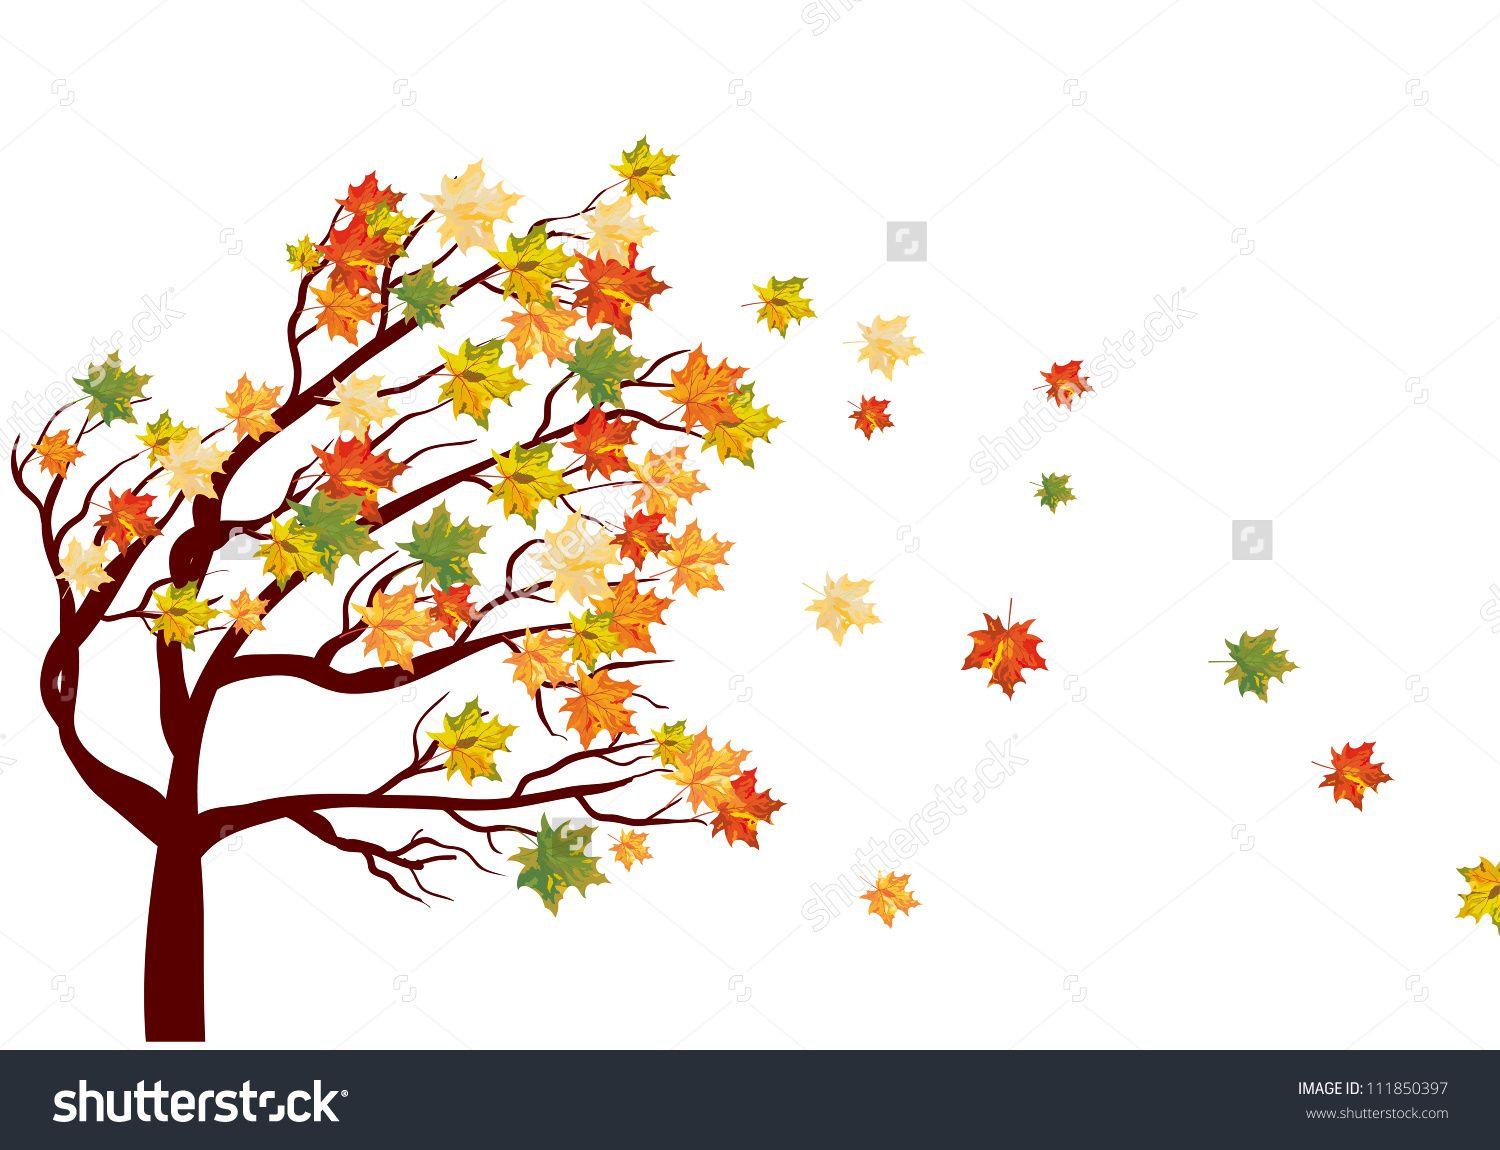 1500x1150 Autumn Maple Tree With Falling Leaves. Vector Illustration